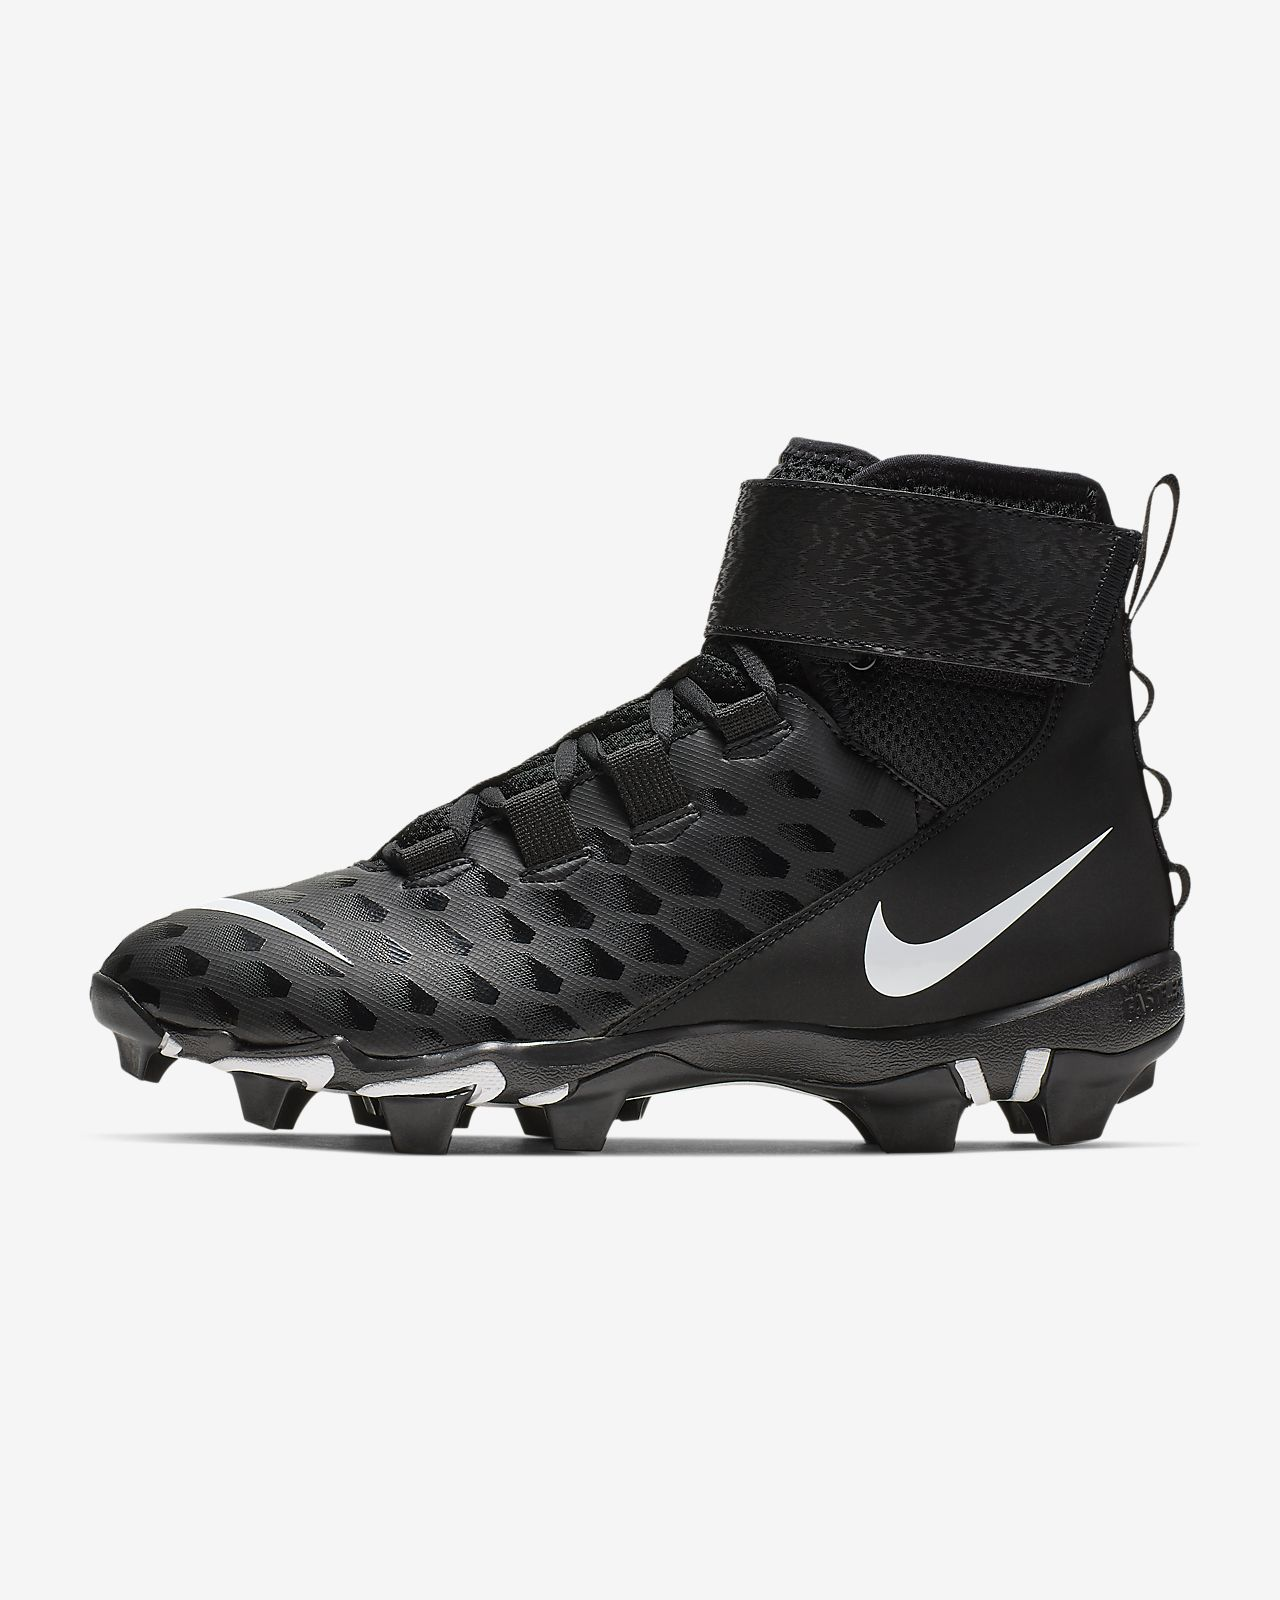 222d88814 Nike Force Savage Shark 2 Men's Football Cleat (Wide). Nike.com